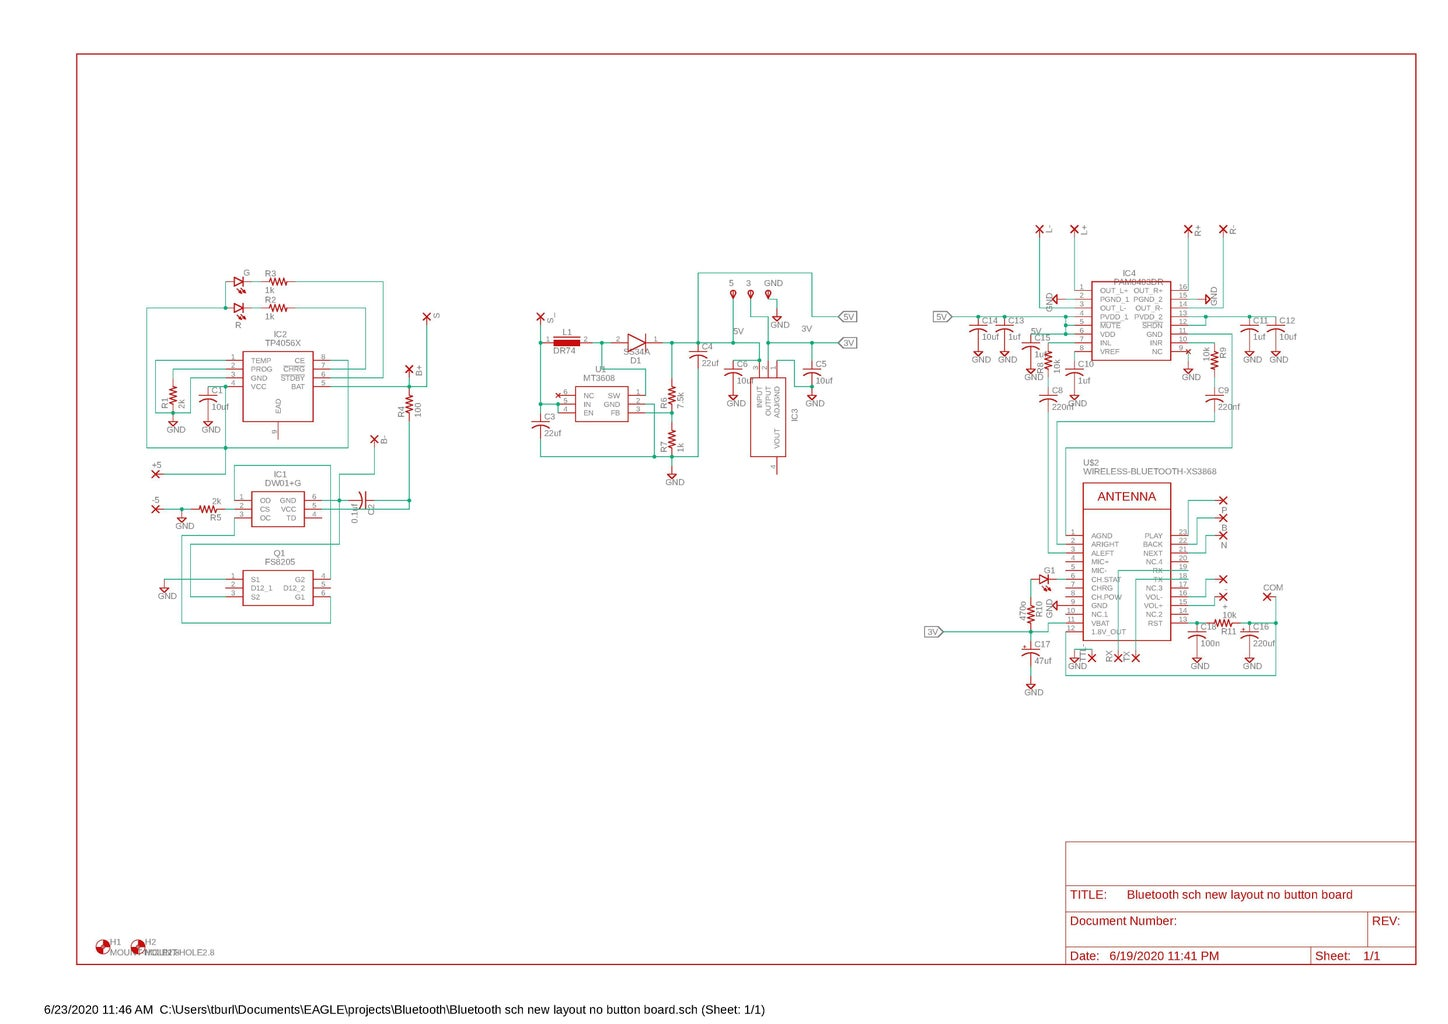 The Schematic and Board View.